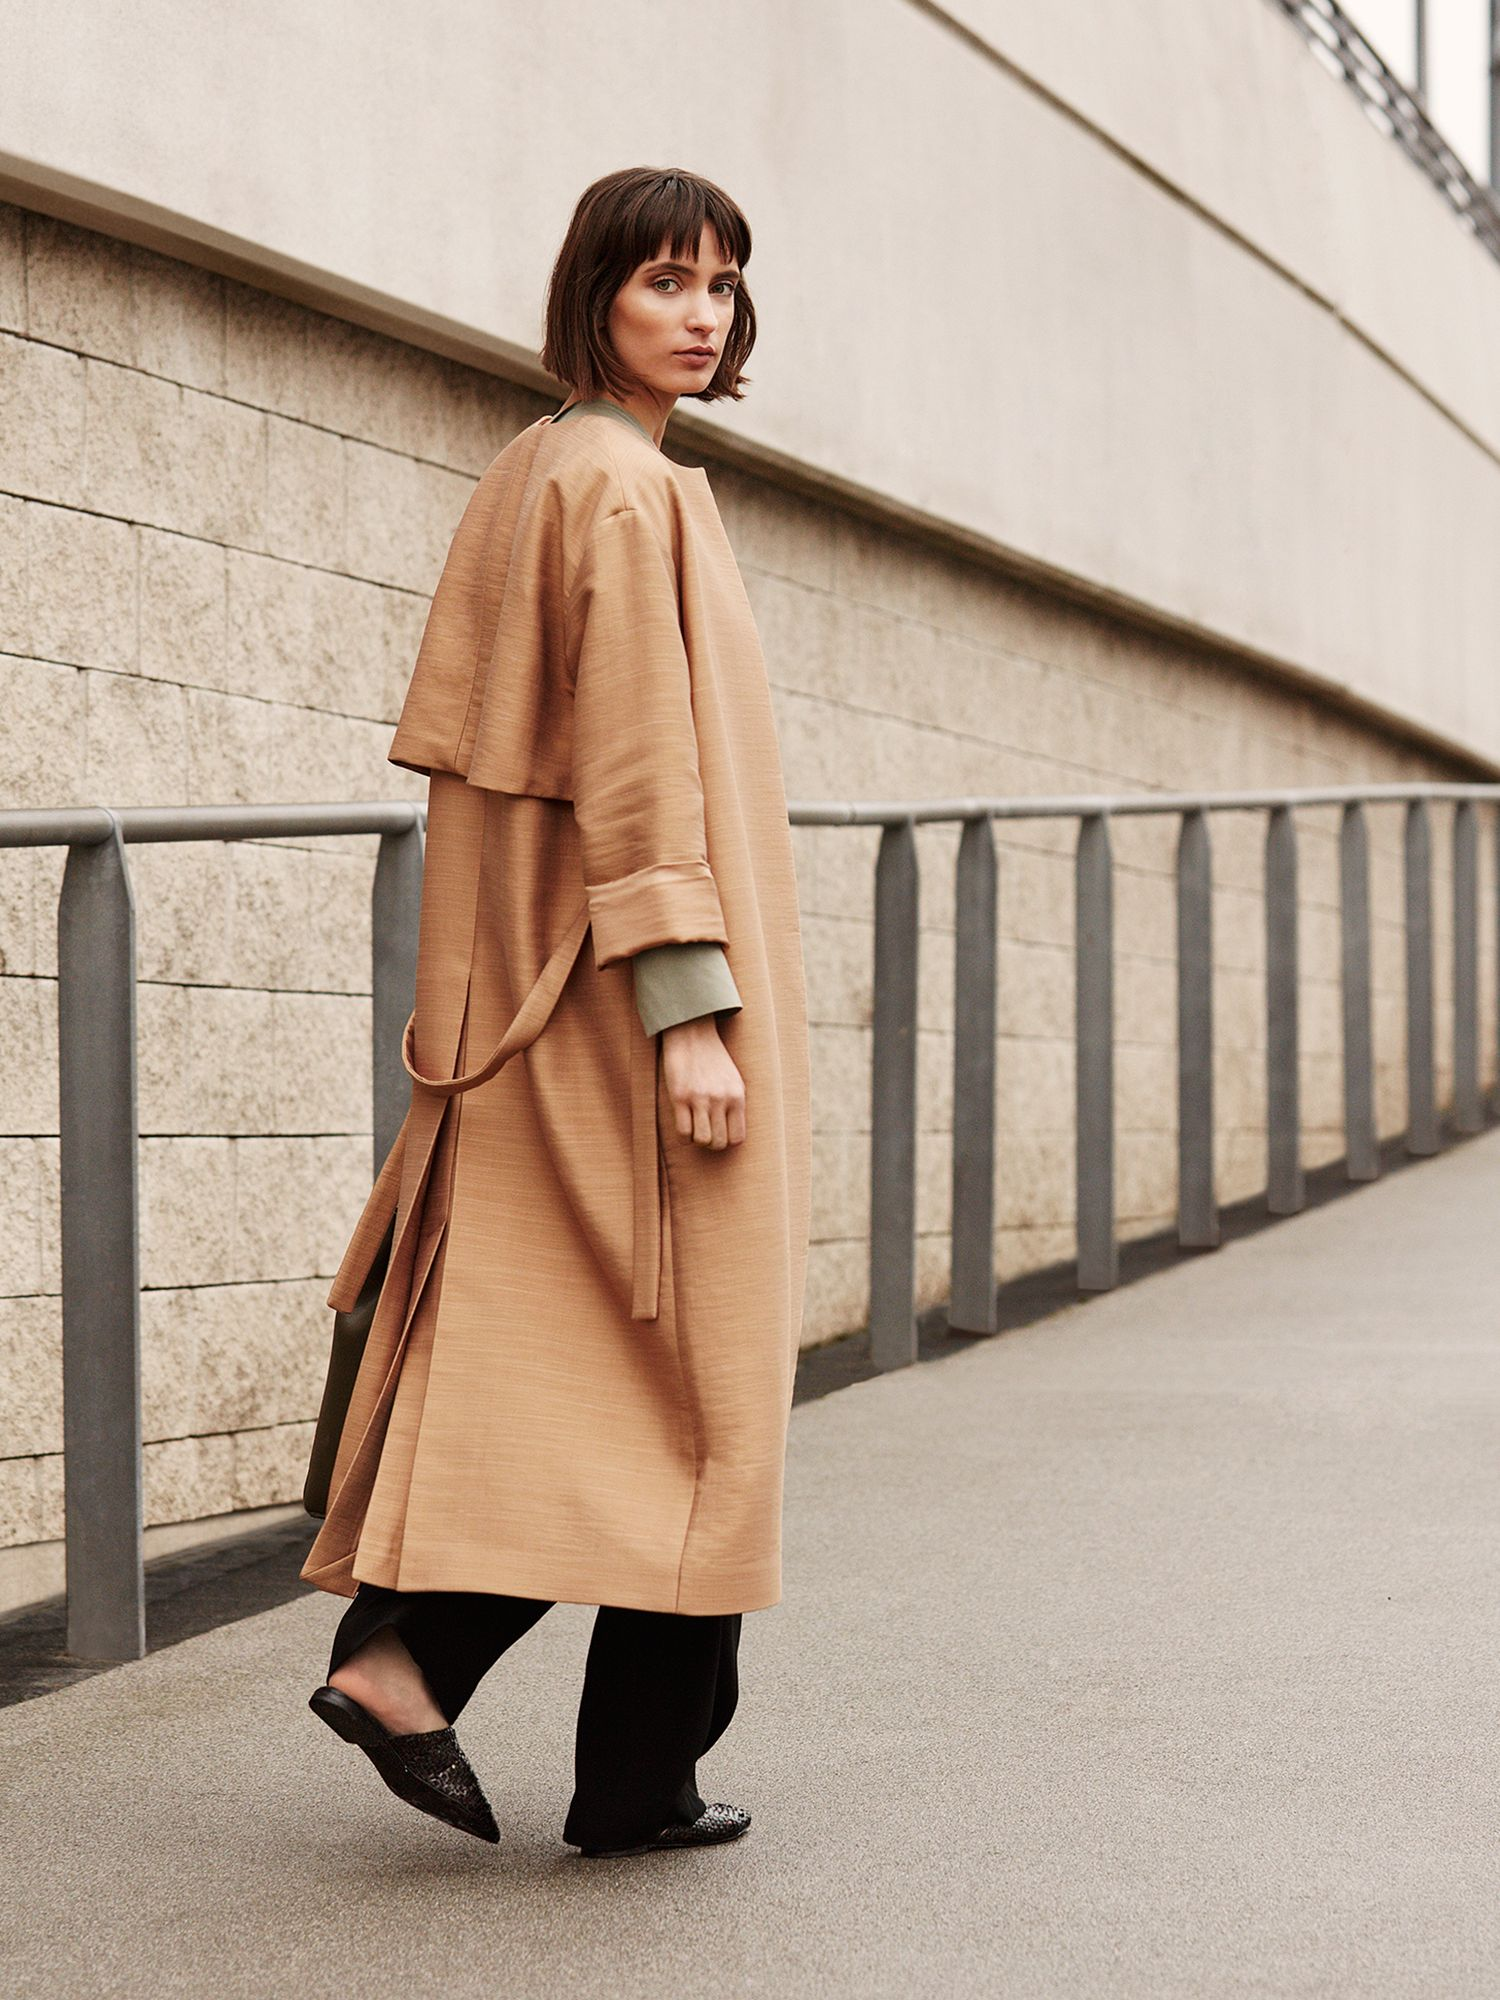 woman in a trench coat and flat shoes